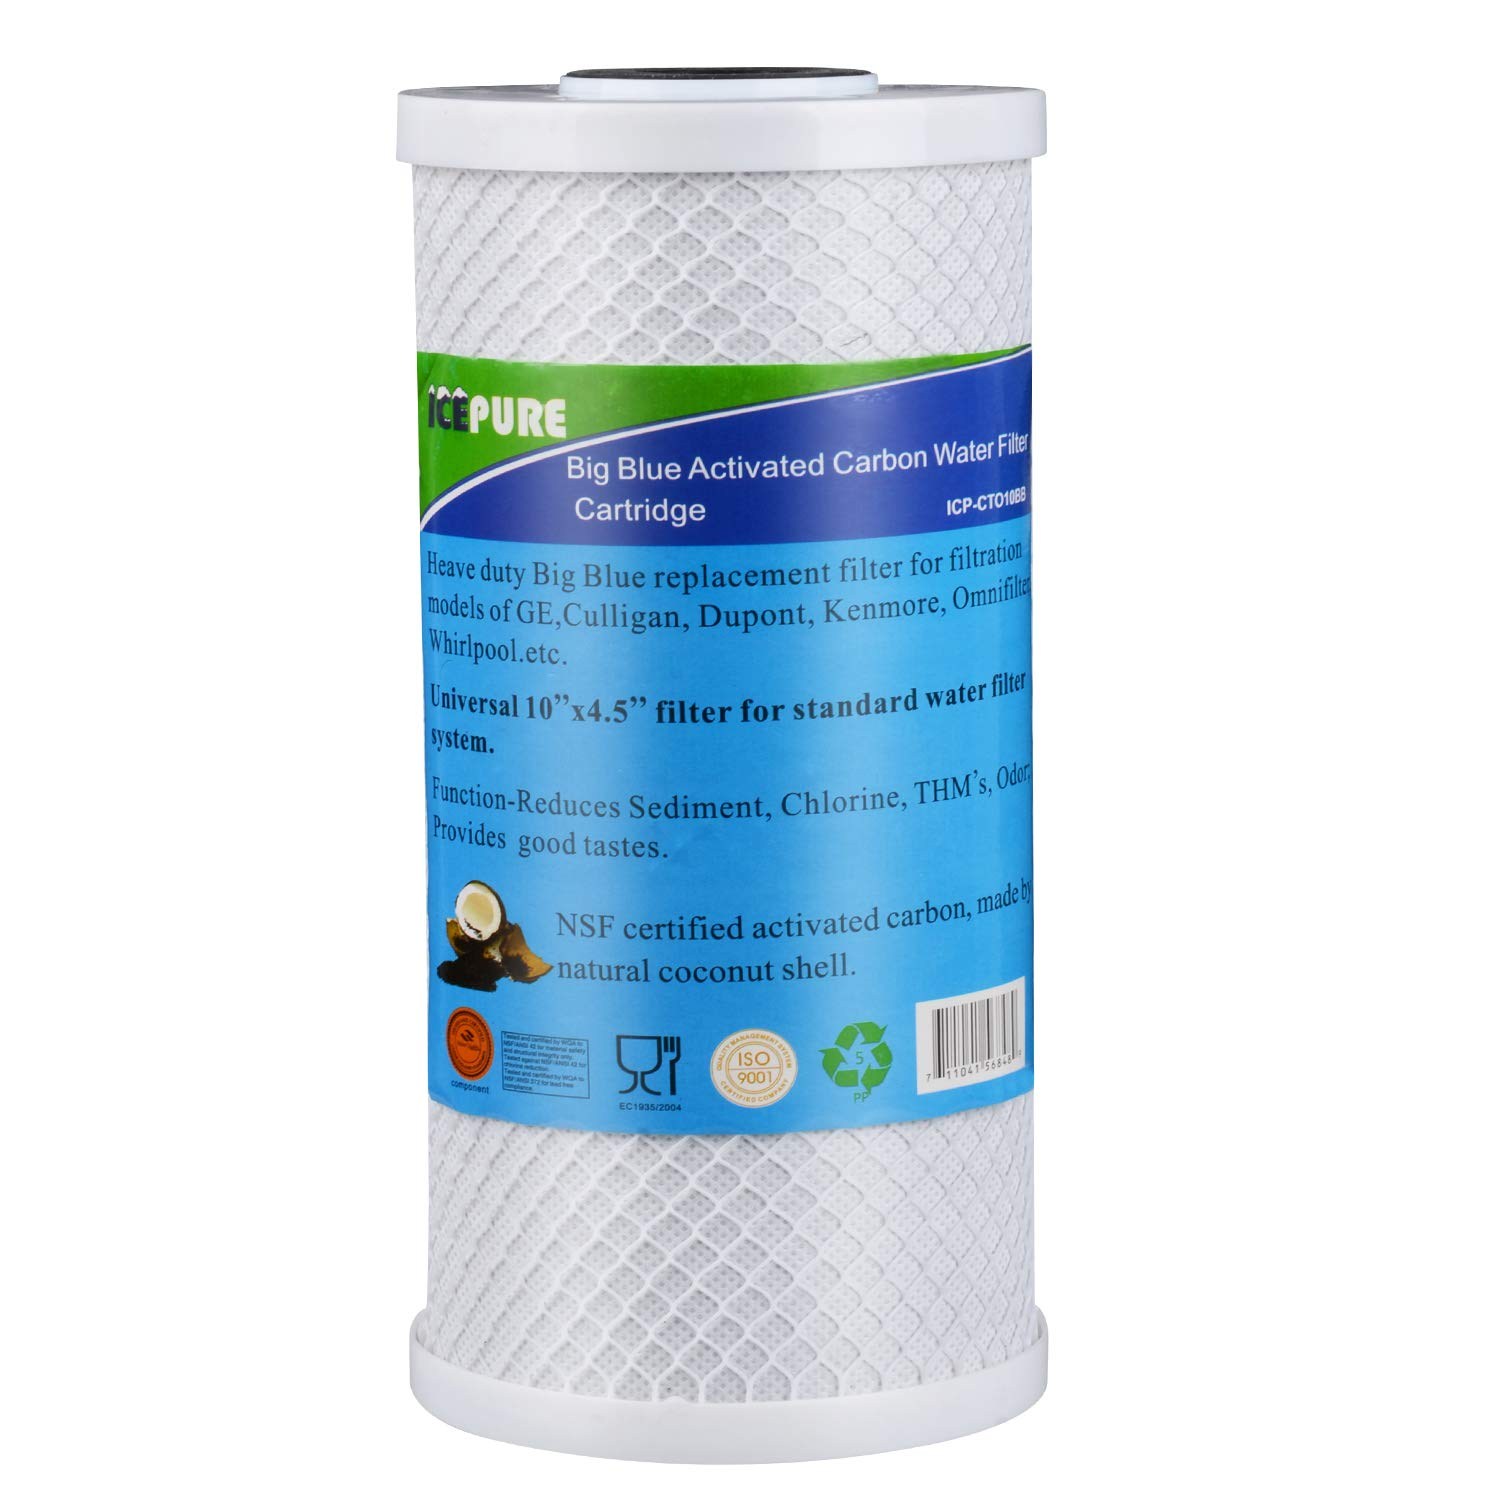 GOLDEN ICEPURE Whole House Big Blue Activated Carbon Water Filter Compatible with Pentair Pentek CBC Series, EP Series, EPM Series, CCBC & CEP Series,NSF Certified Filter